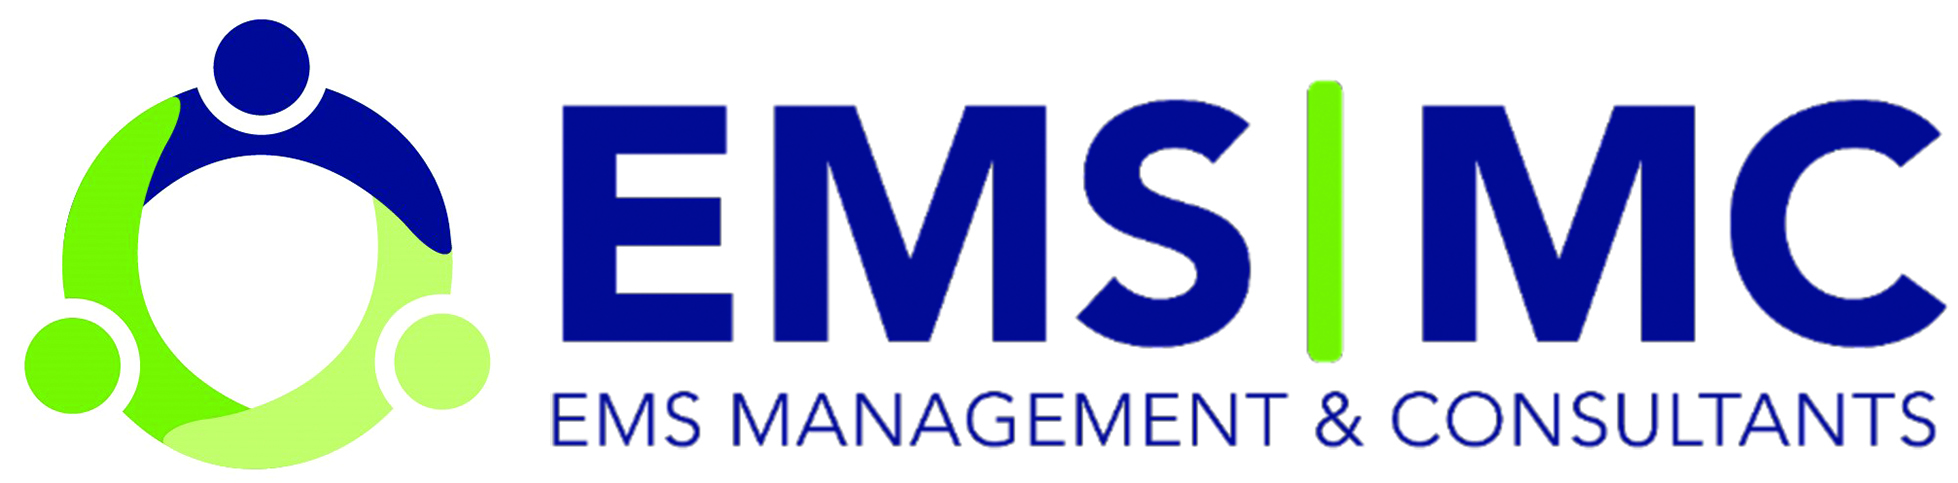 EMS Management & Consultants, Inc.